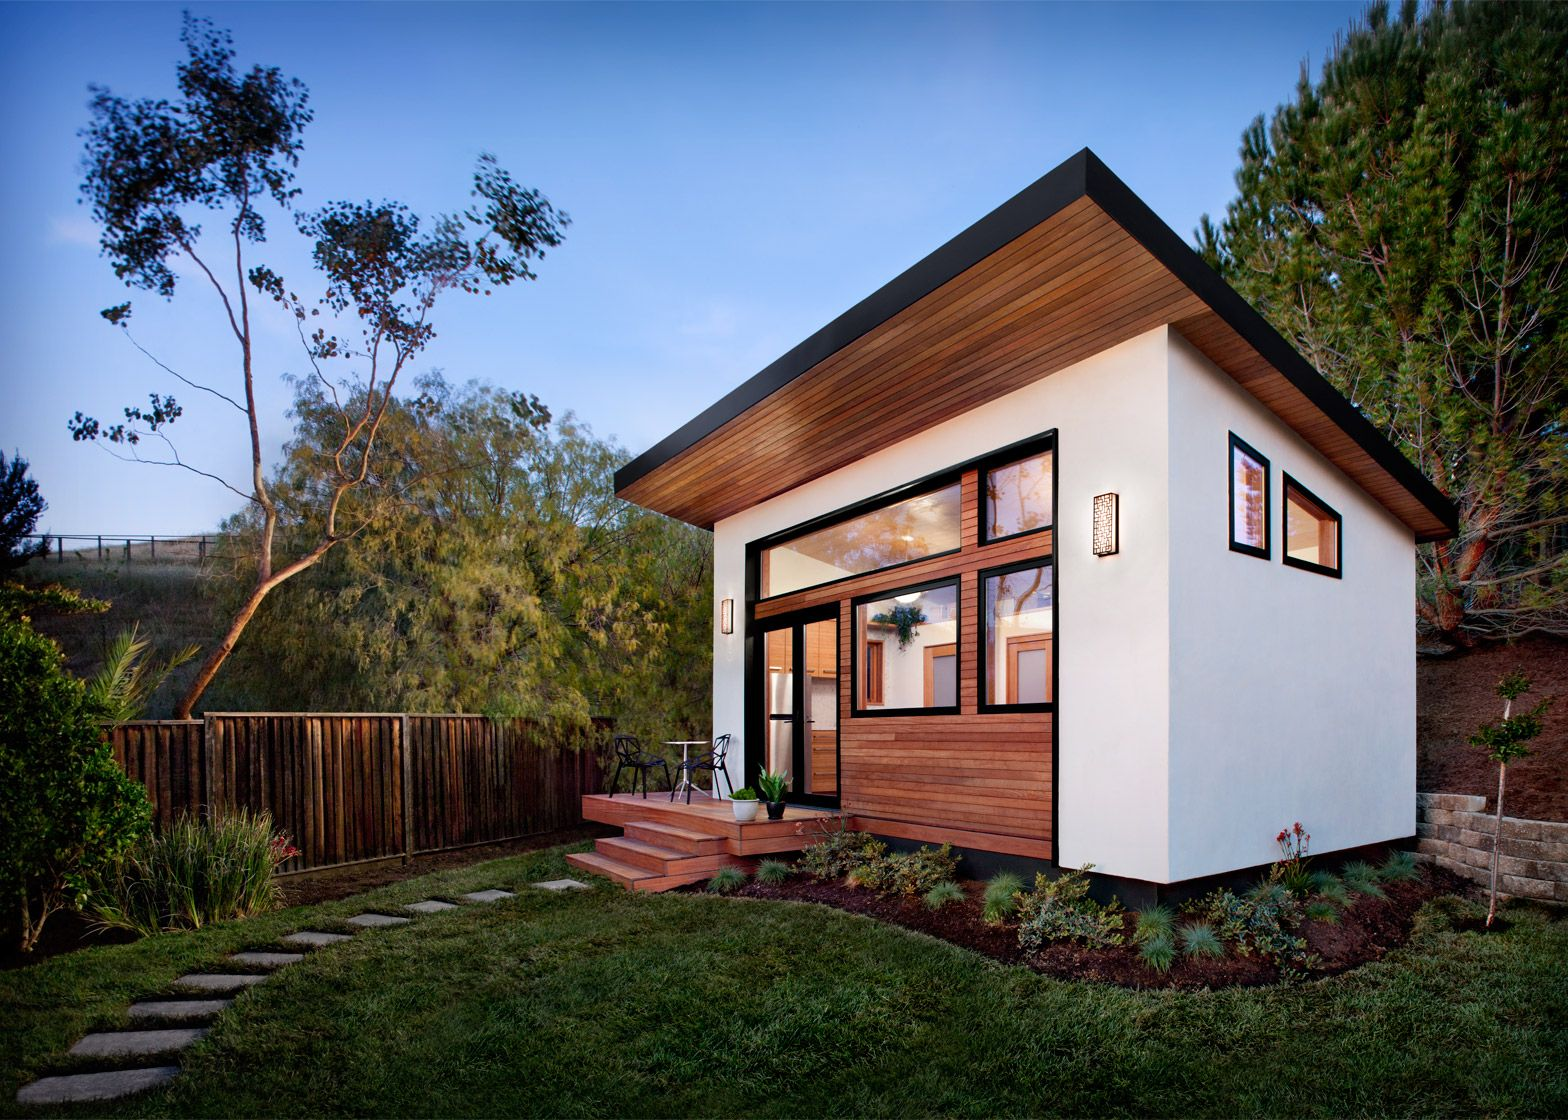 Avava S Tiny House Represents Completely New Way To Do Prefab Backyard Guest Houses Tiny Guest House Guest House Small Backyard guest house ideas